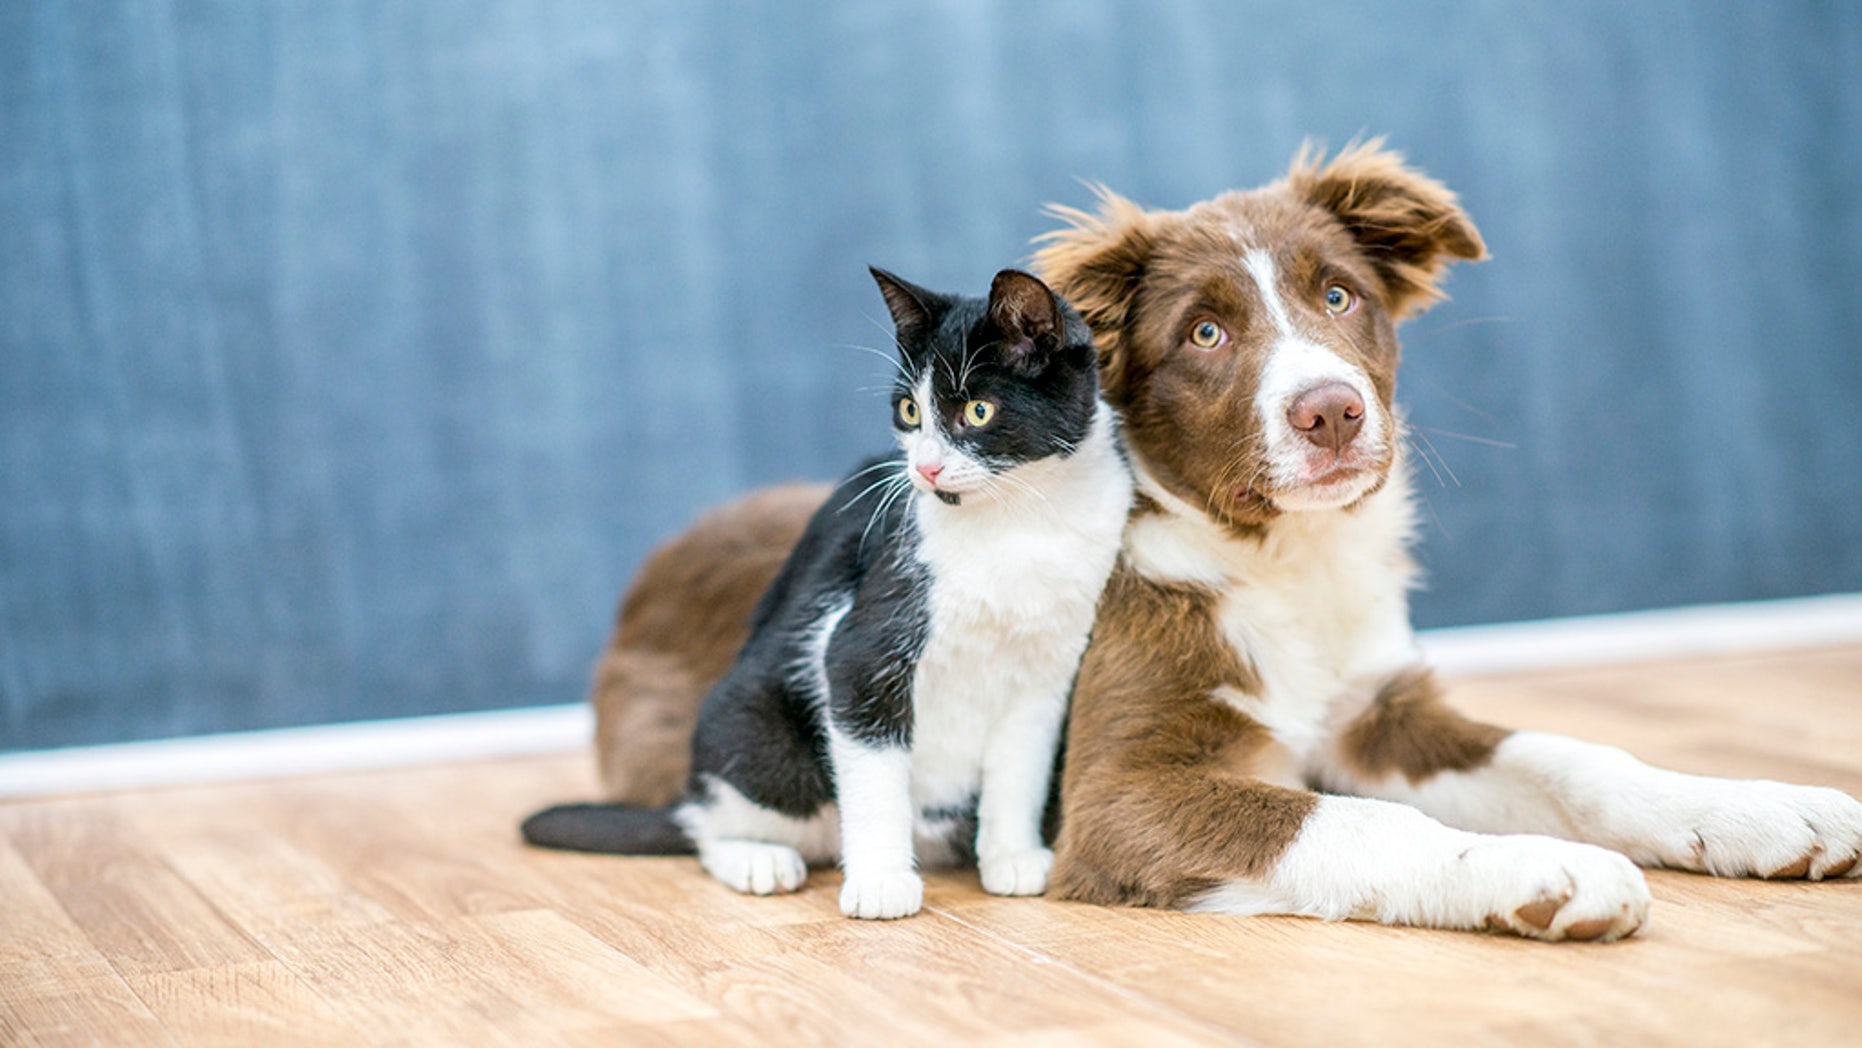 The study was led by researchers at the University of Pennsylvania's Perelman School of Medicine and the School of Veterinary Medicine.